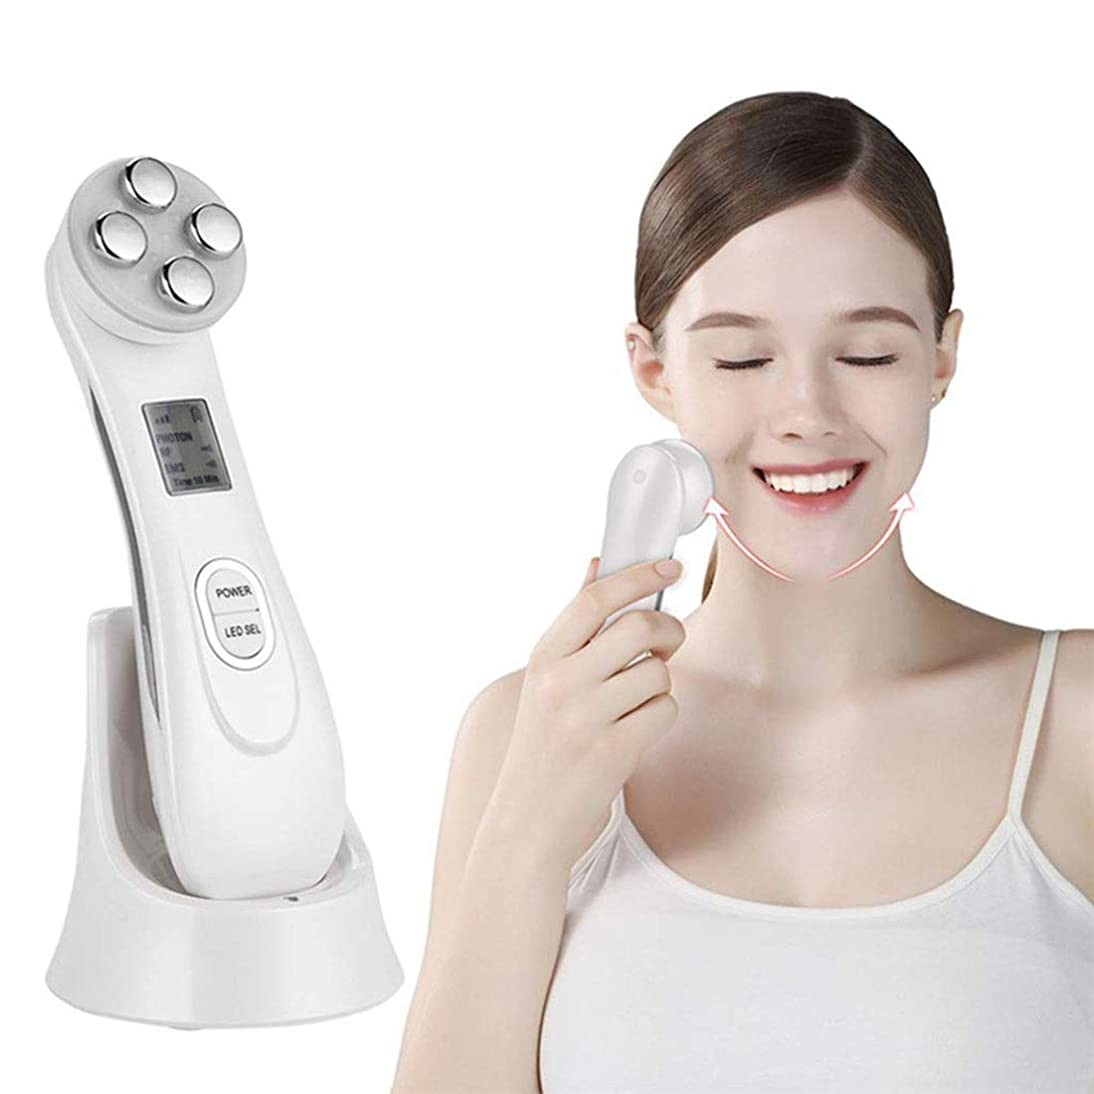 シャッター非常にスイッチSkin Tightening Machine, 5 In 1 Face Massager Facial Remover Wrinkle Skin Care Beauty Machine